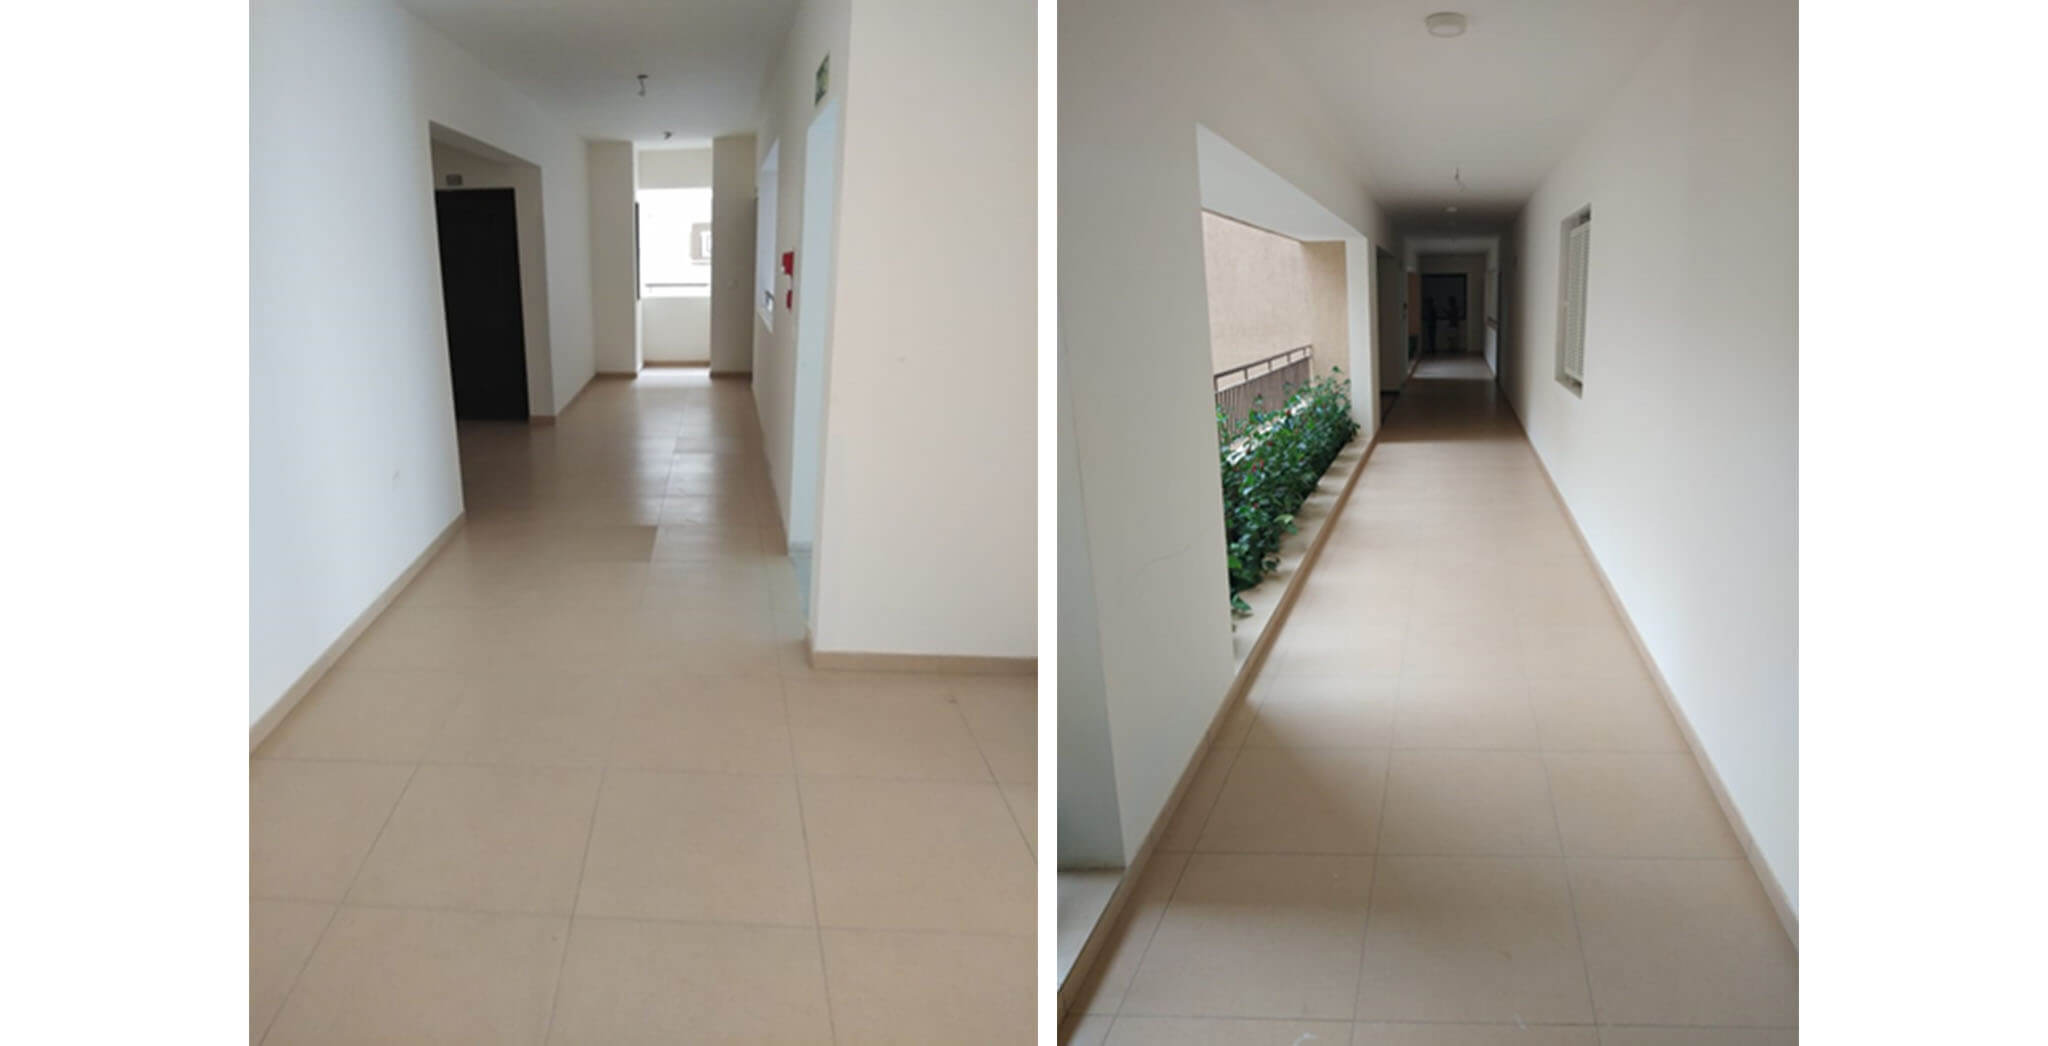 May 2020 - Deodar—A block: Corridor–Final coat painting completed